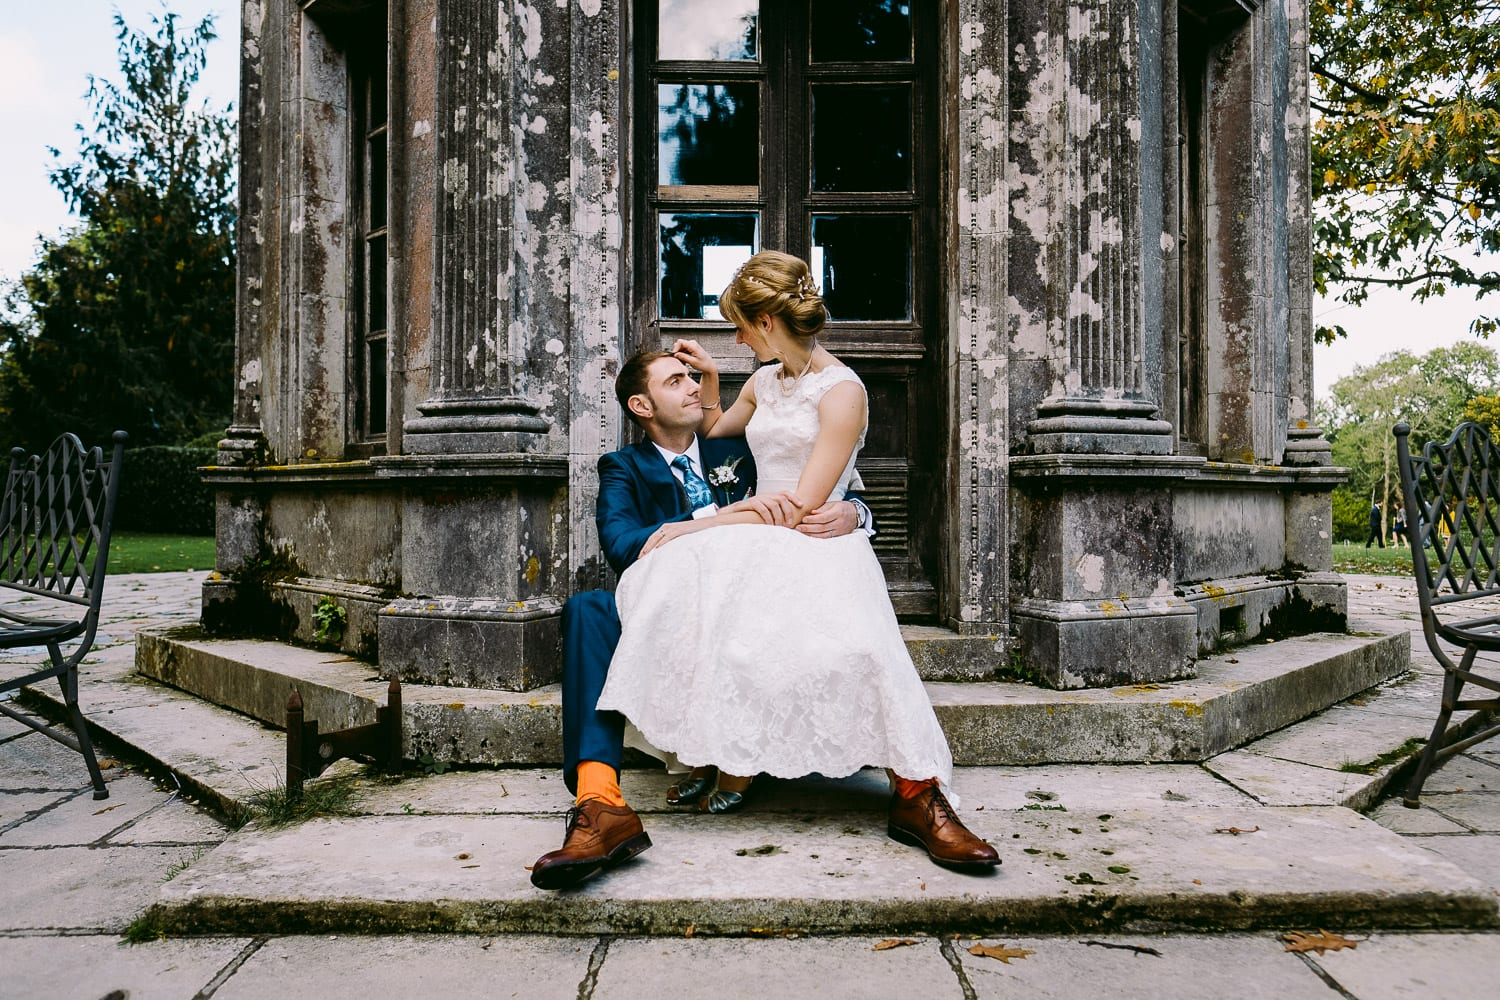 Bride and groom sitting on steps in the garden